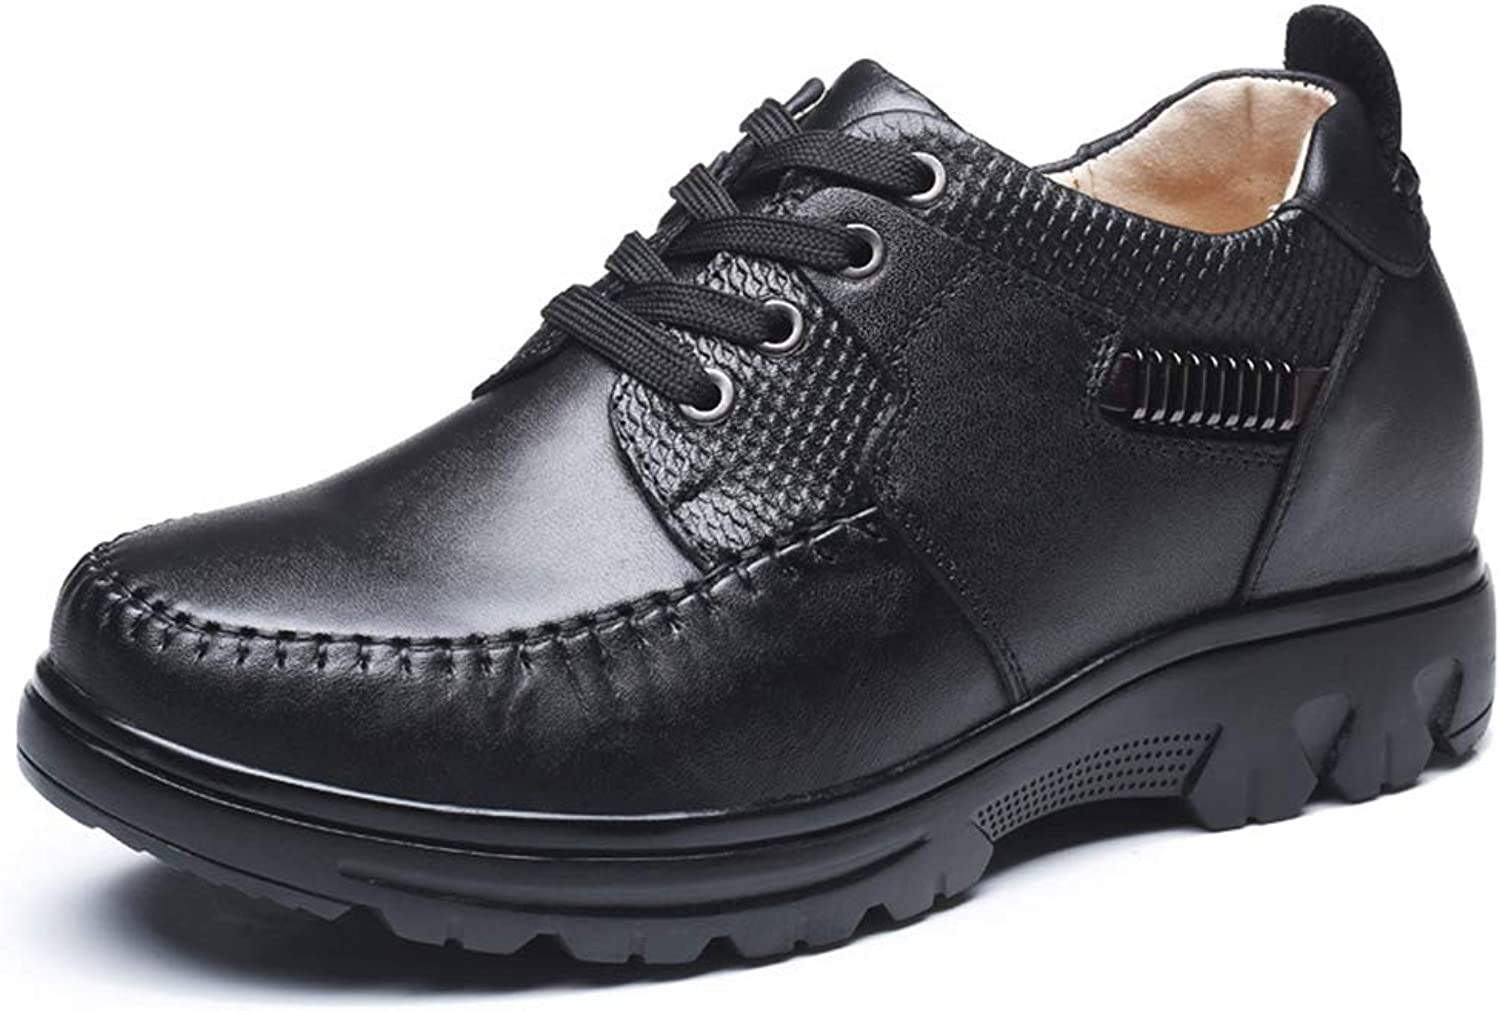 Men's shoes,Spring Fall Leather Lace Up Formal Business shoes,Comfort Driving shoes,Black,37